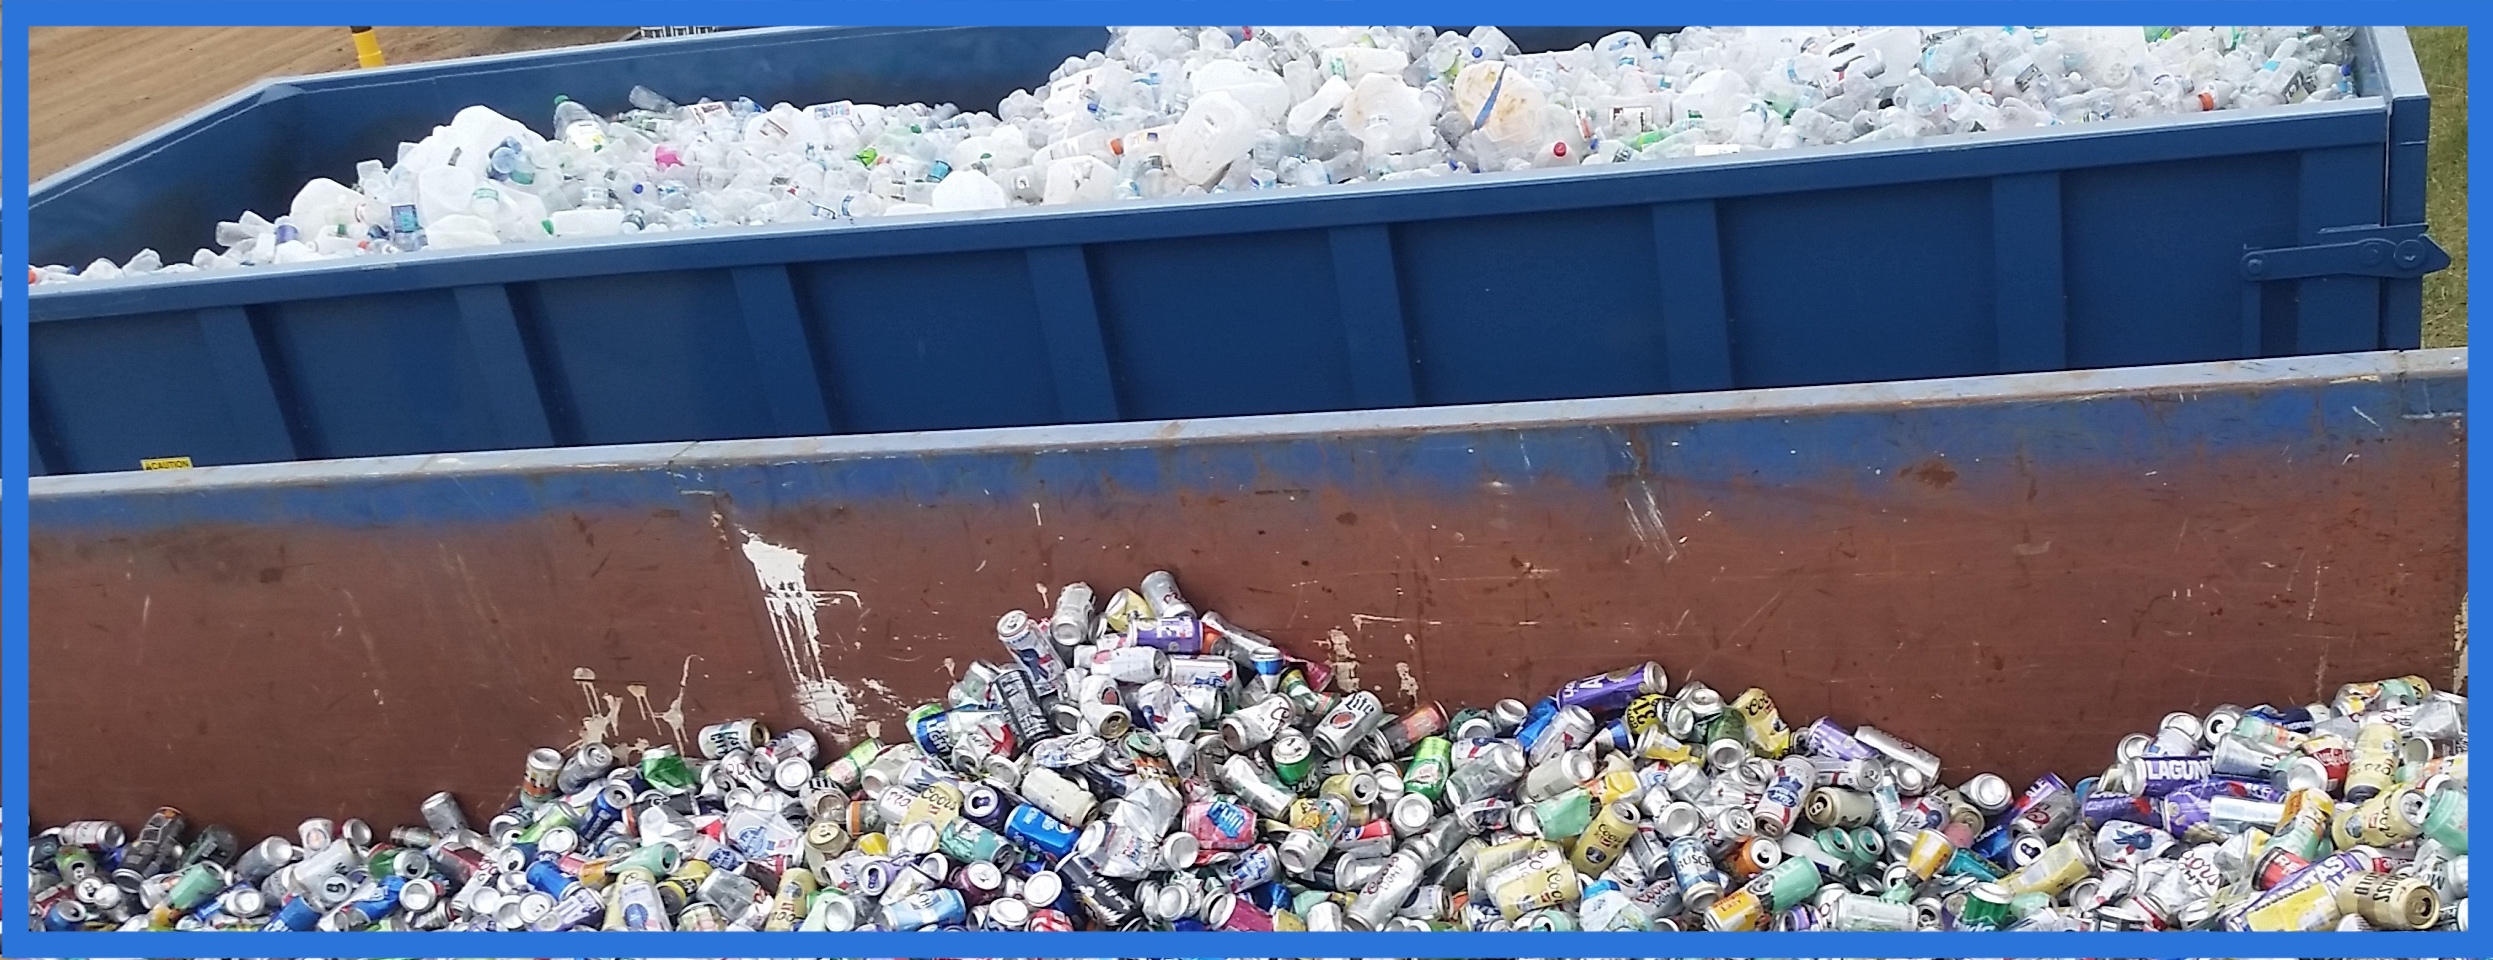 Two recycling dumpers: First is full of aluminum cans, second is full of plastic bottles. Clean Recycling.